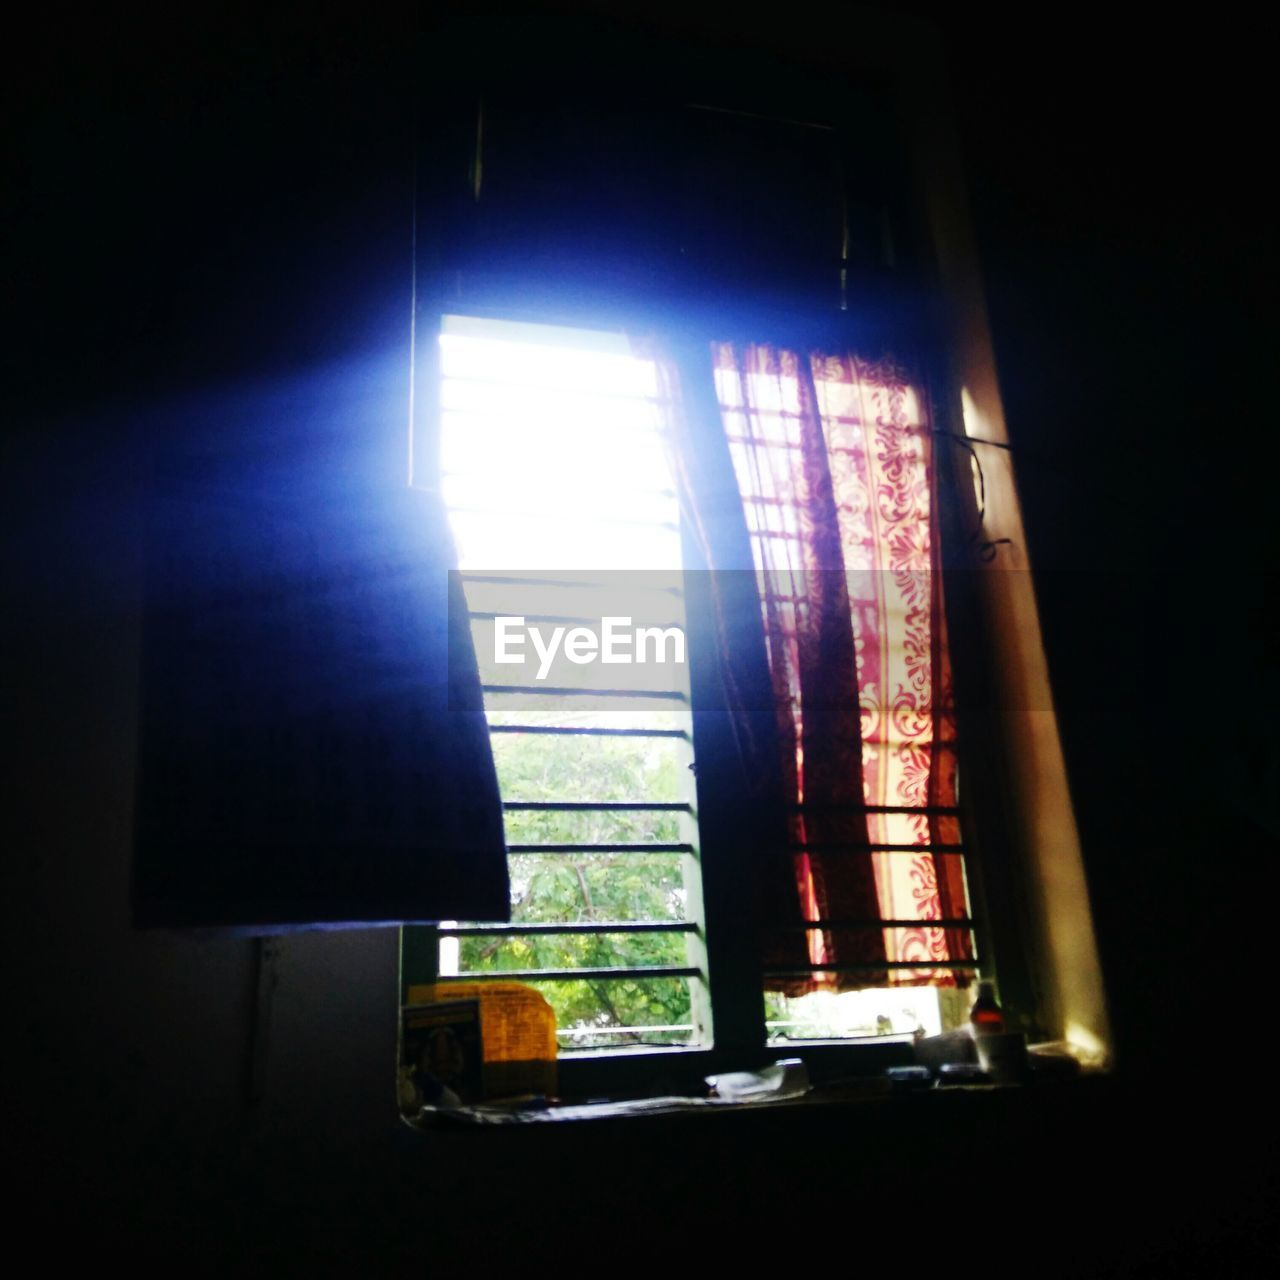 window, indoors, sunlight, no people, home interior, curtain, day, domestic room, daylight, architecture, close-up